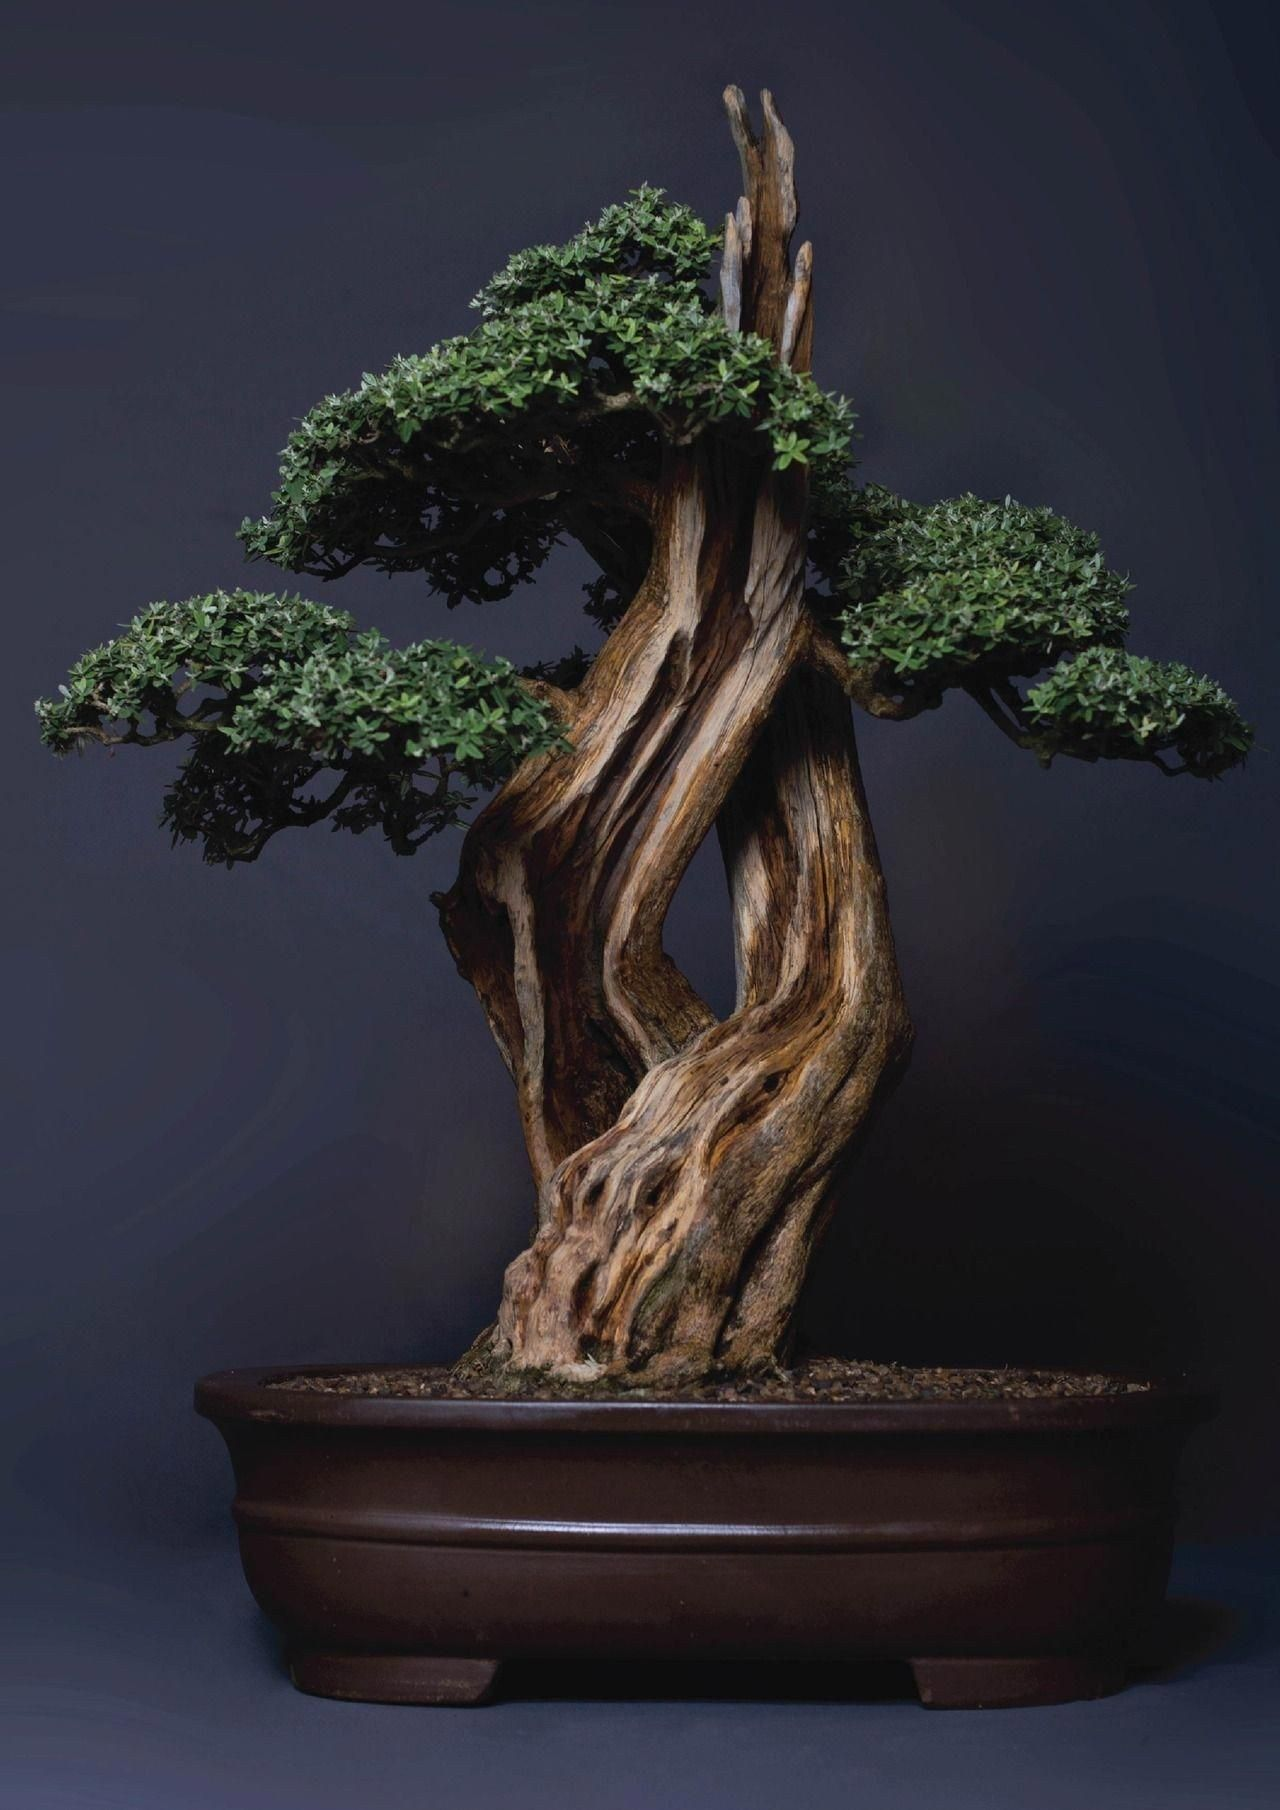 Juniper Bonsai Tree Care - Juniper Bonsai Tree Care Pictures, Best 49 Bonzai Wallpaper On Hipwallpaper